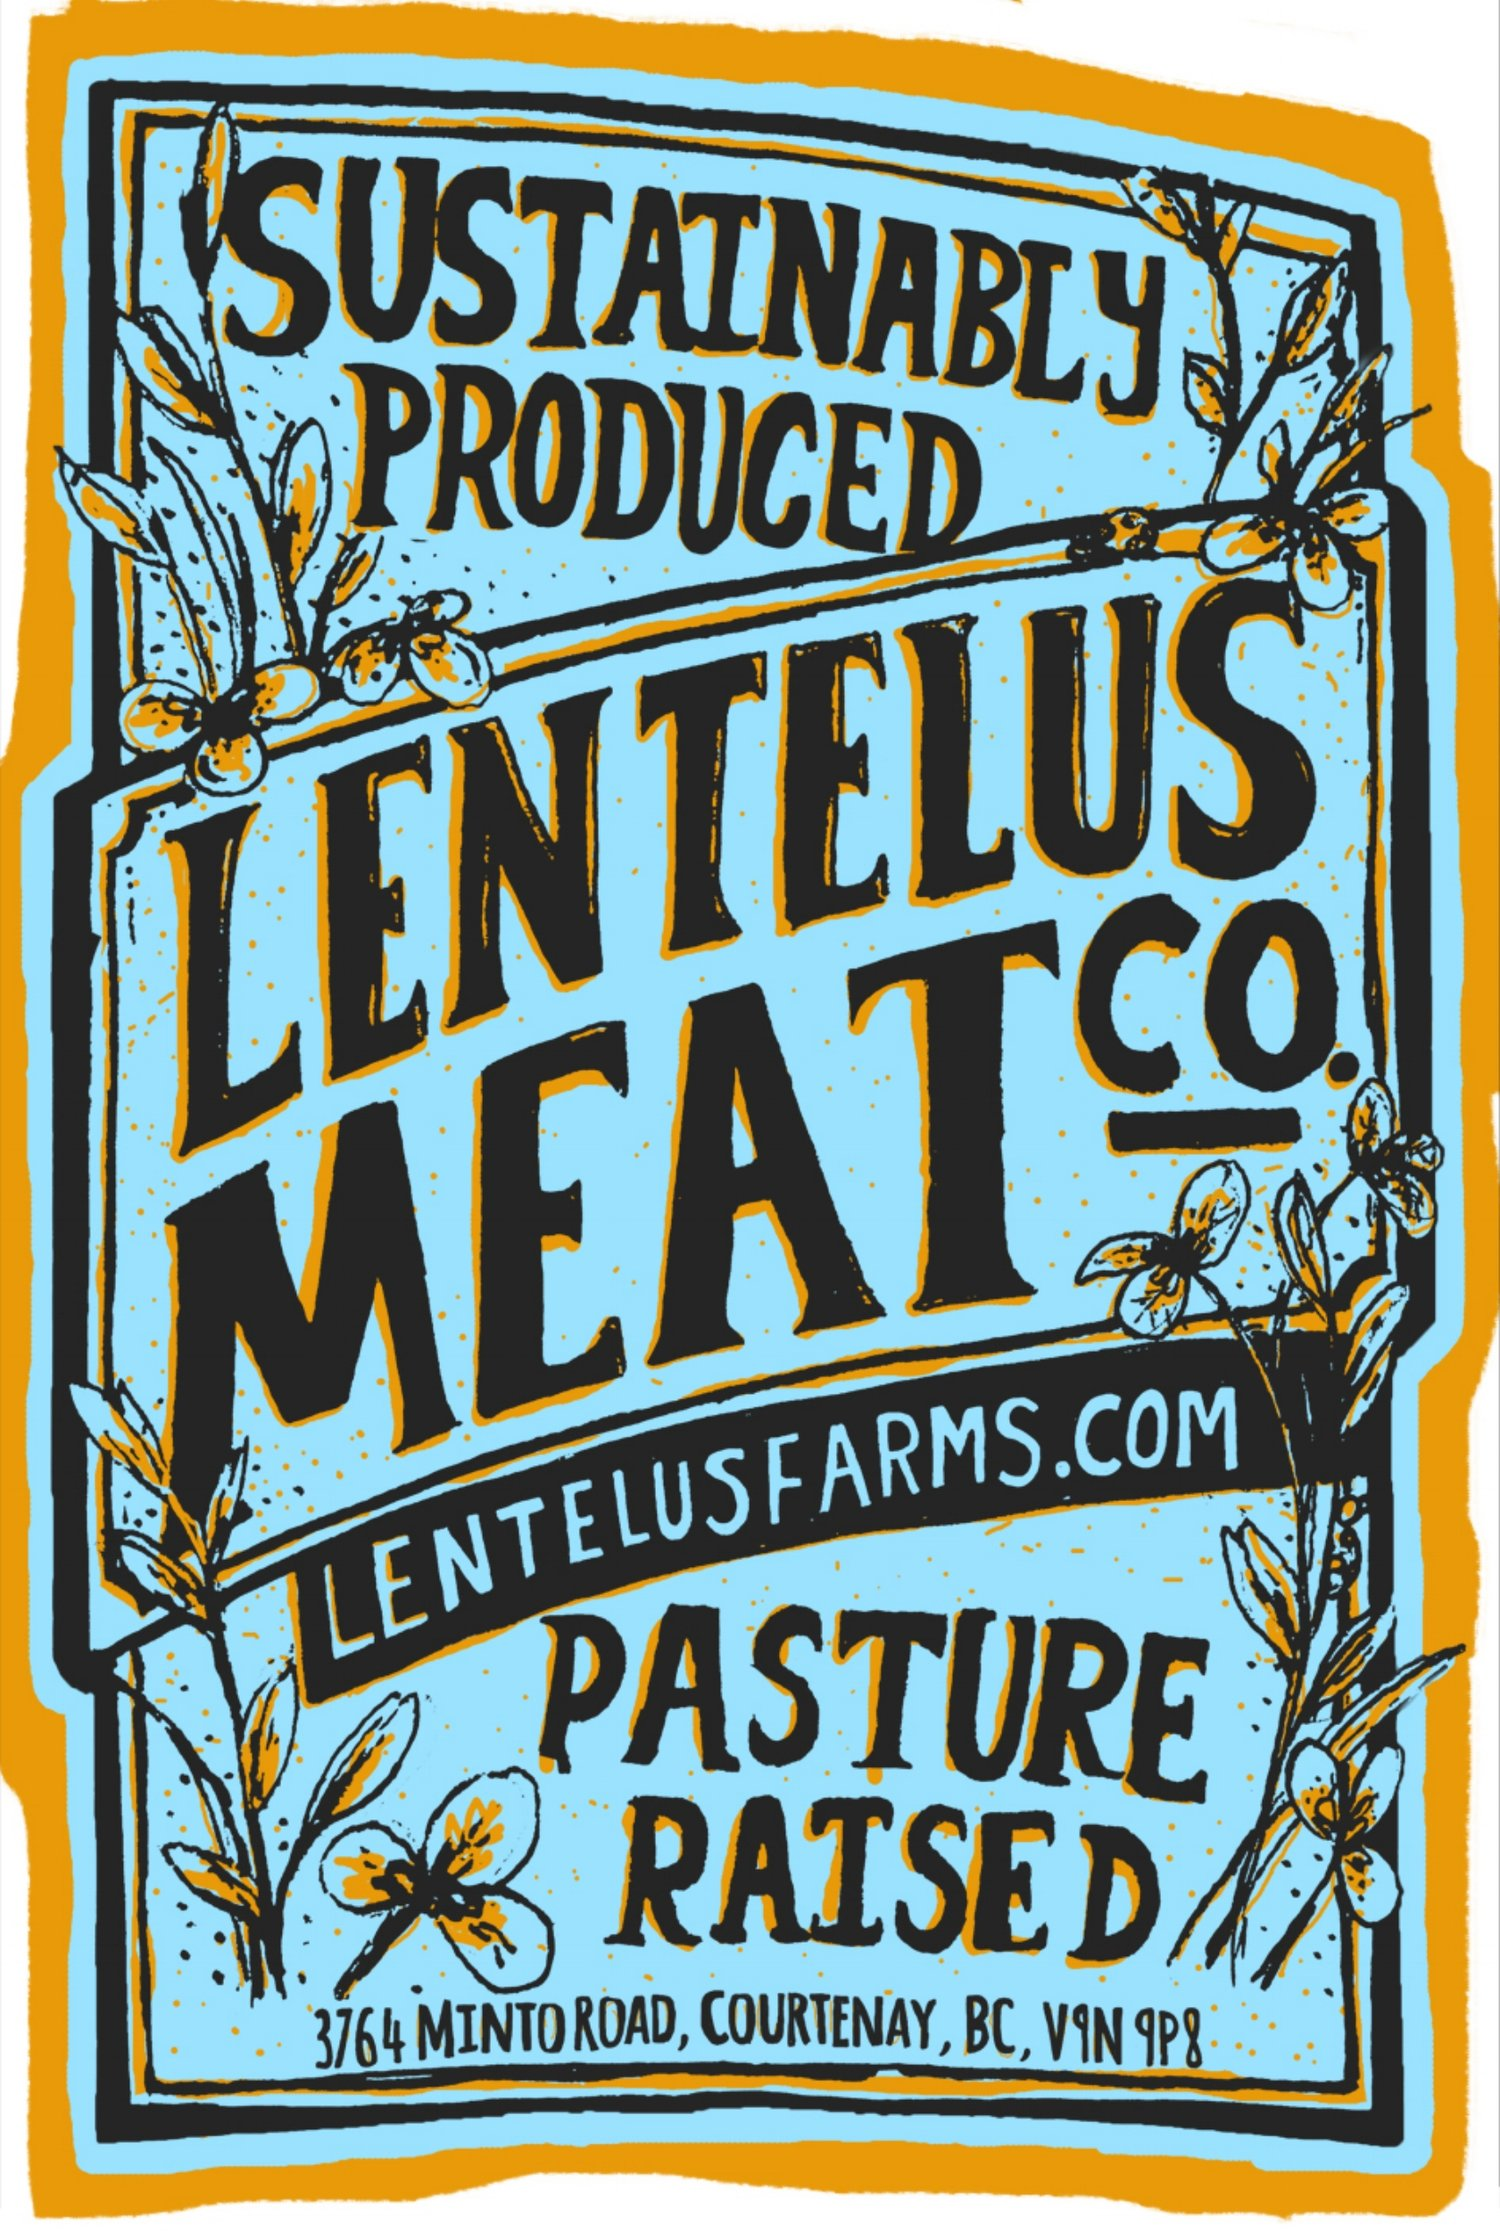 LENTELUS FARMS